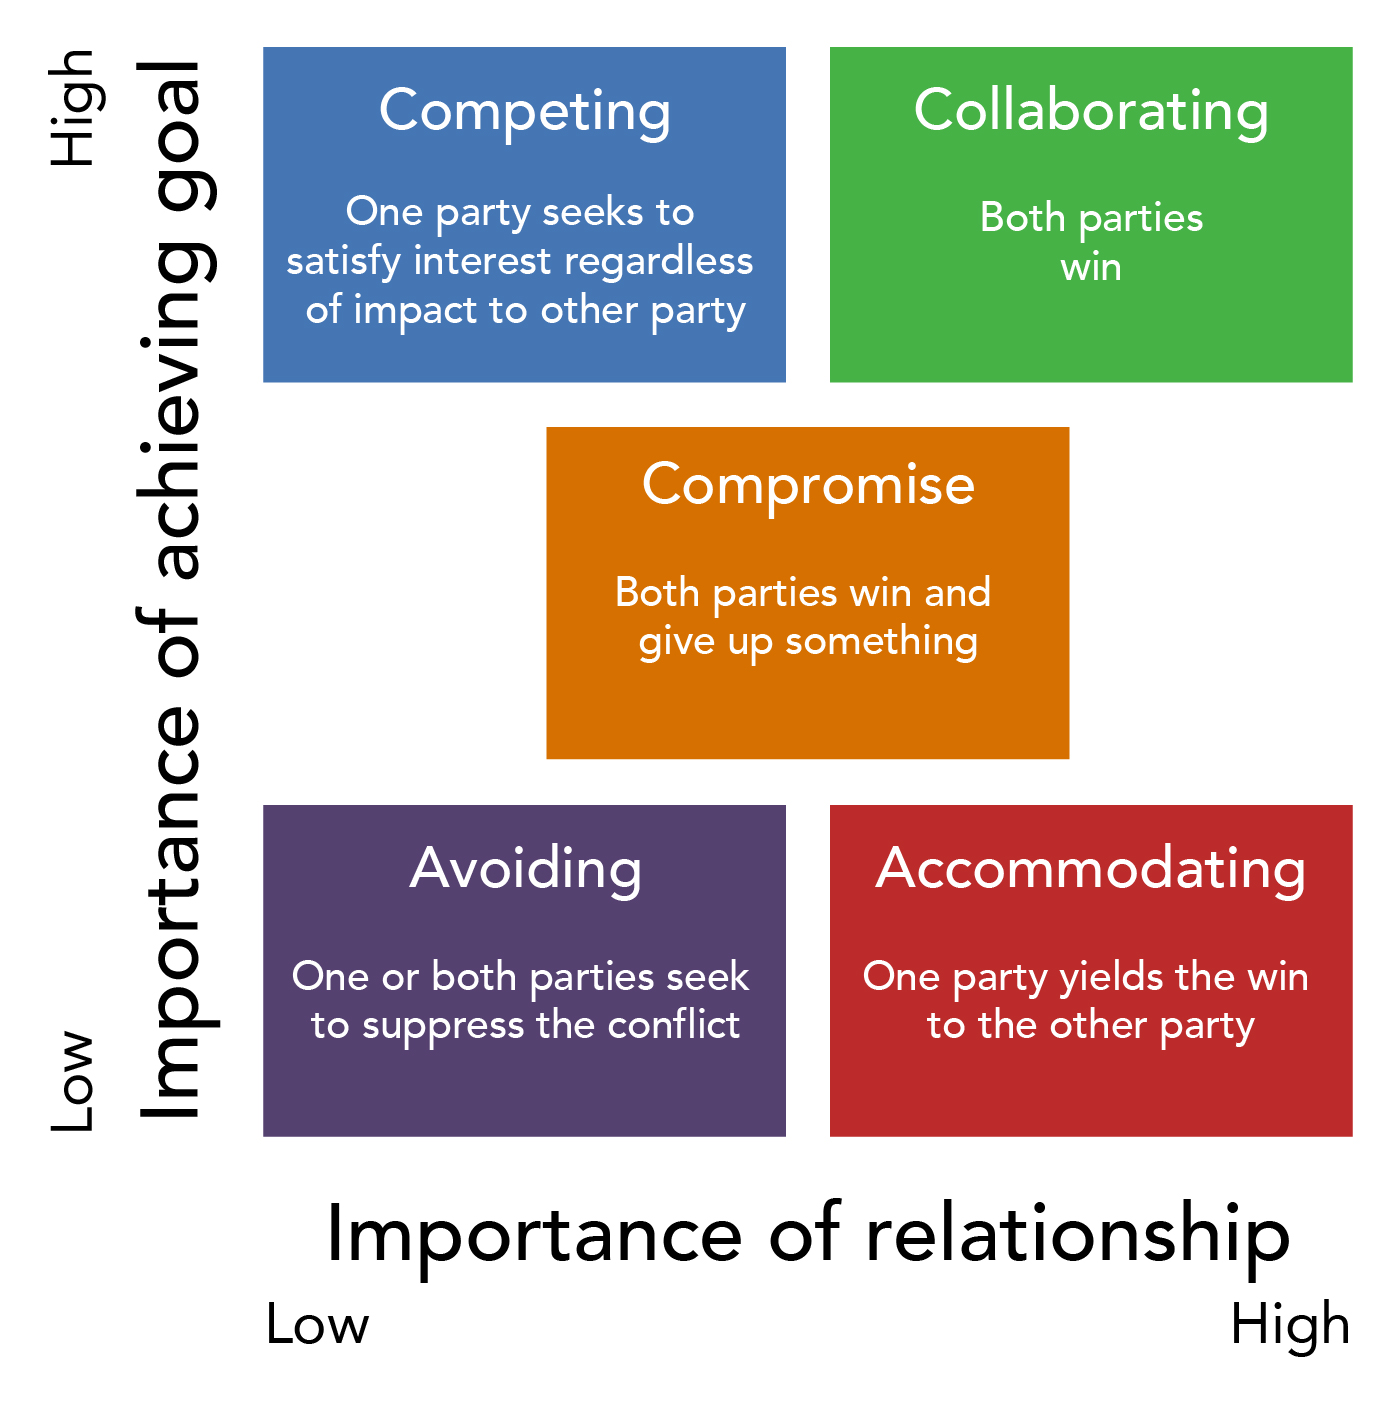 A chart showing the importance of achieving a goal and the importance of relationship in five styles of conflict management. In the competing style, one party seeks to satisfy interest regardless of impact to other party; thus, the goal is very important, and the relationship is not important. In the collaborating style, both parties win, thus the goal is very important and the relationship is very important. In the compromise style, both parties win and give up something; thus, the goal and relationship are somewhat important. In the avoiding style, one or both parties seek to suppress the conflict; thus, the goal and relationship are not important. In accommodating style, one party yields the win to the other party; thus, the goal is not important and the relationship is very important.